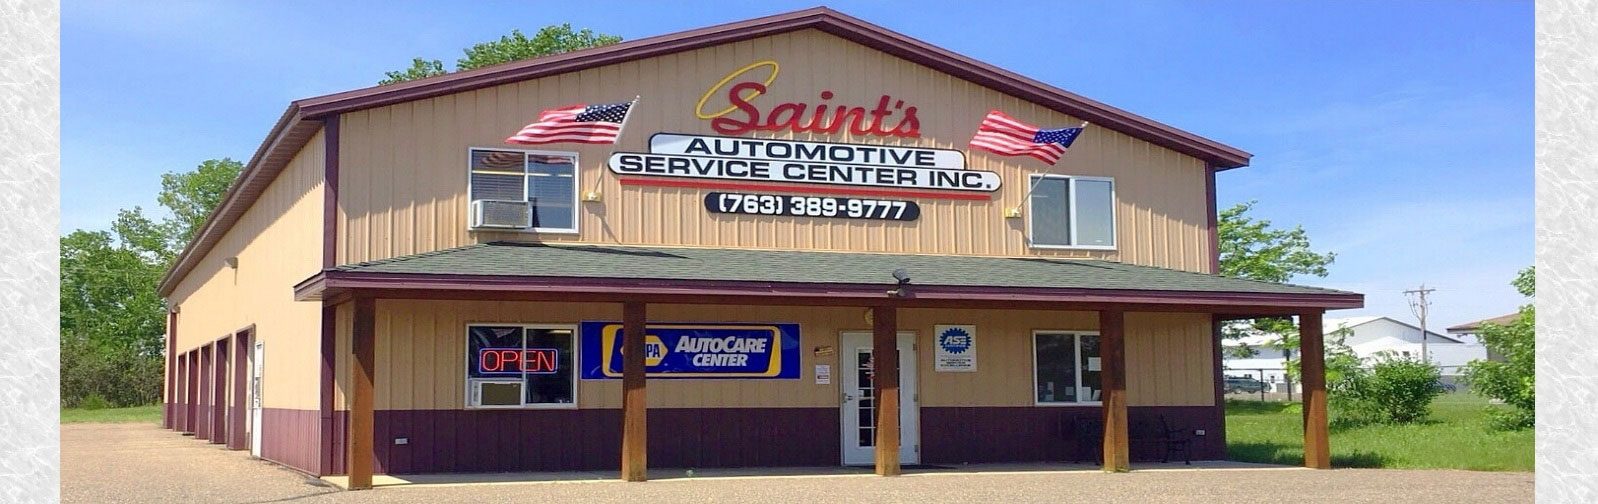 Saint's Automotive Service Center